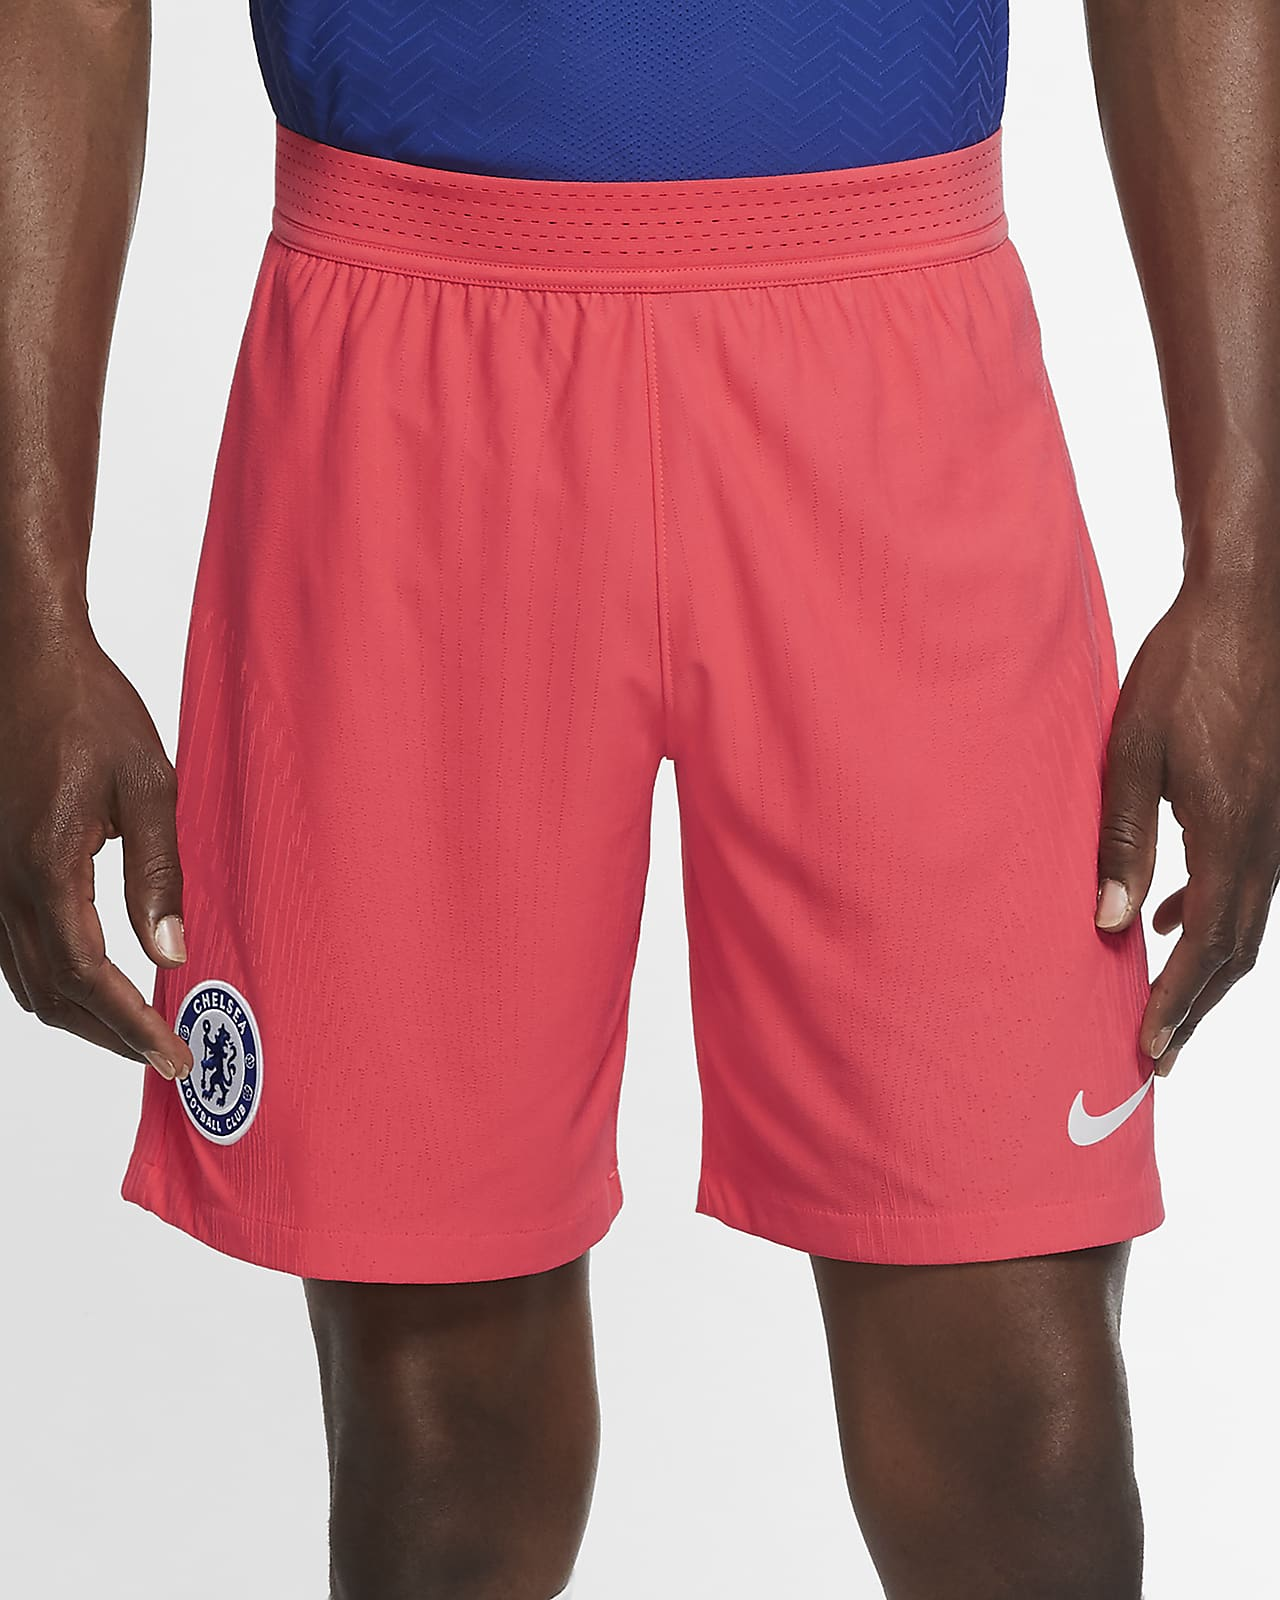 Chelsea F.C. 2020/21 Vapor Match Third Men's Football Shorts